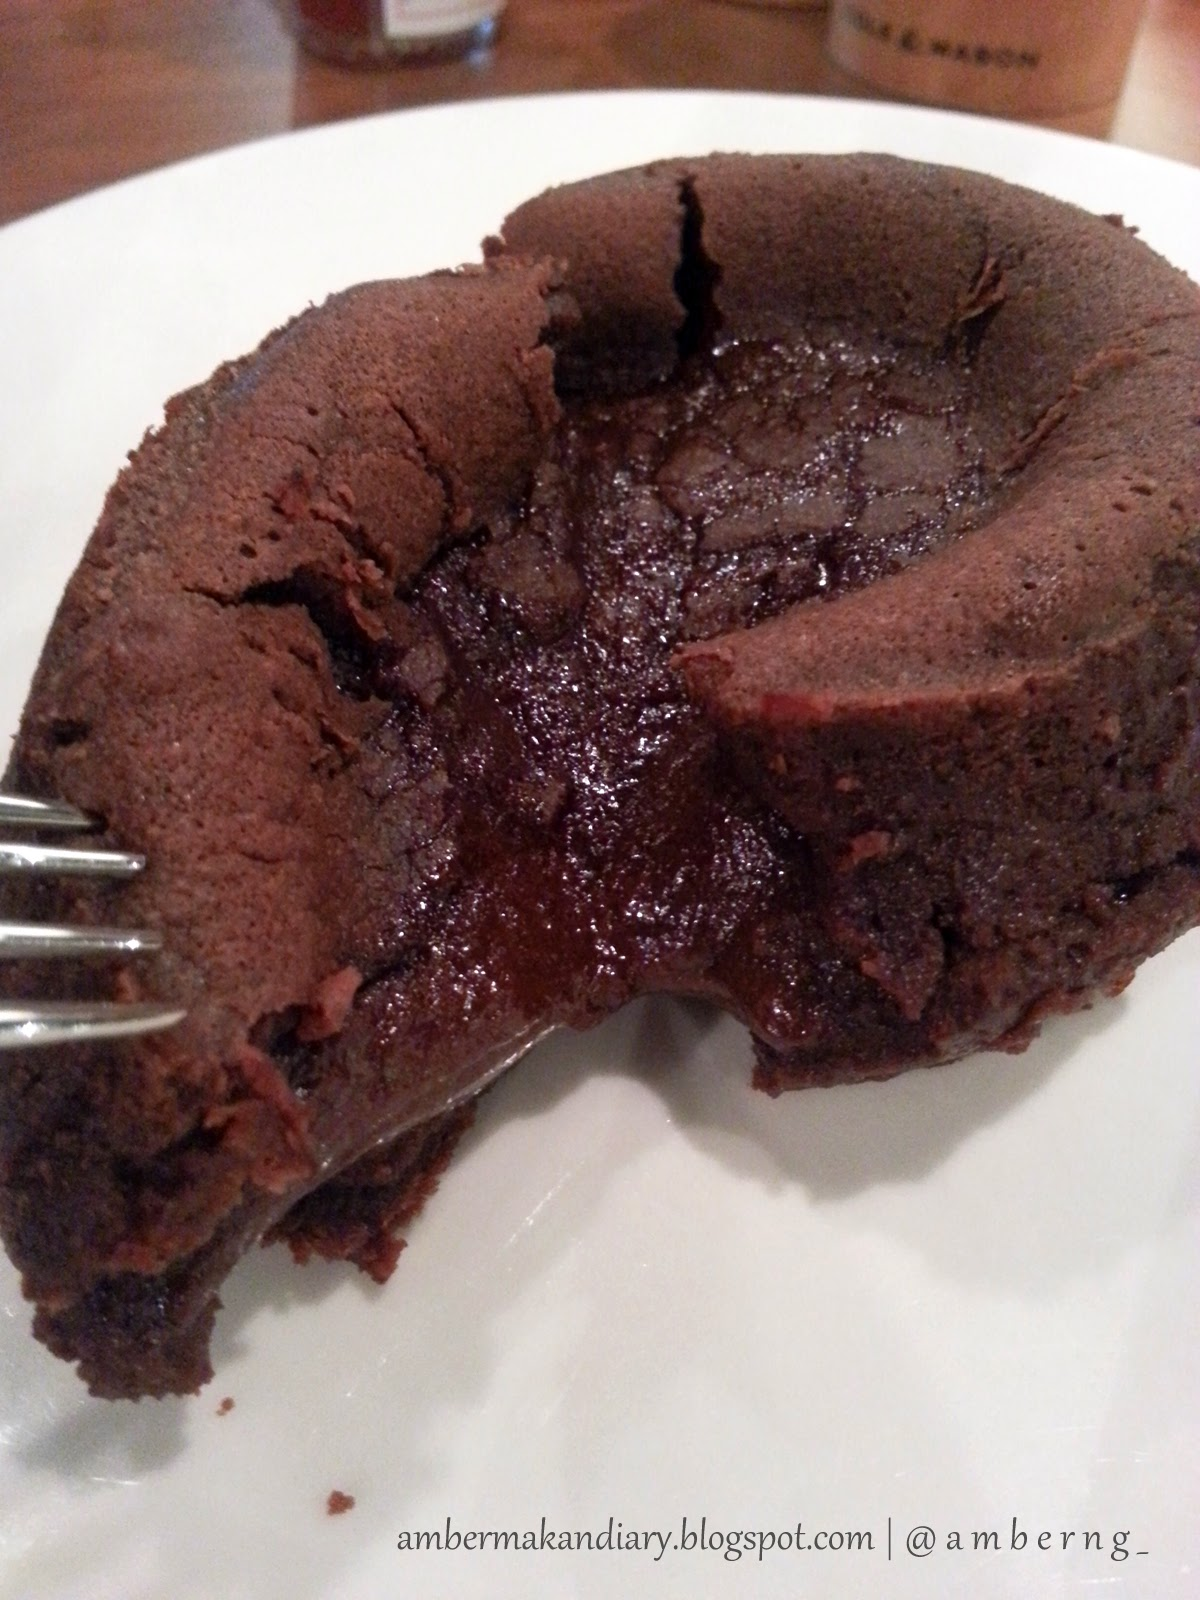 Chocolate Lava Cake - $6.80